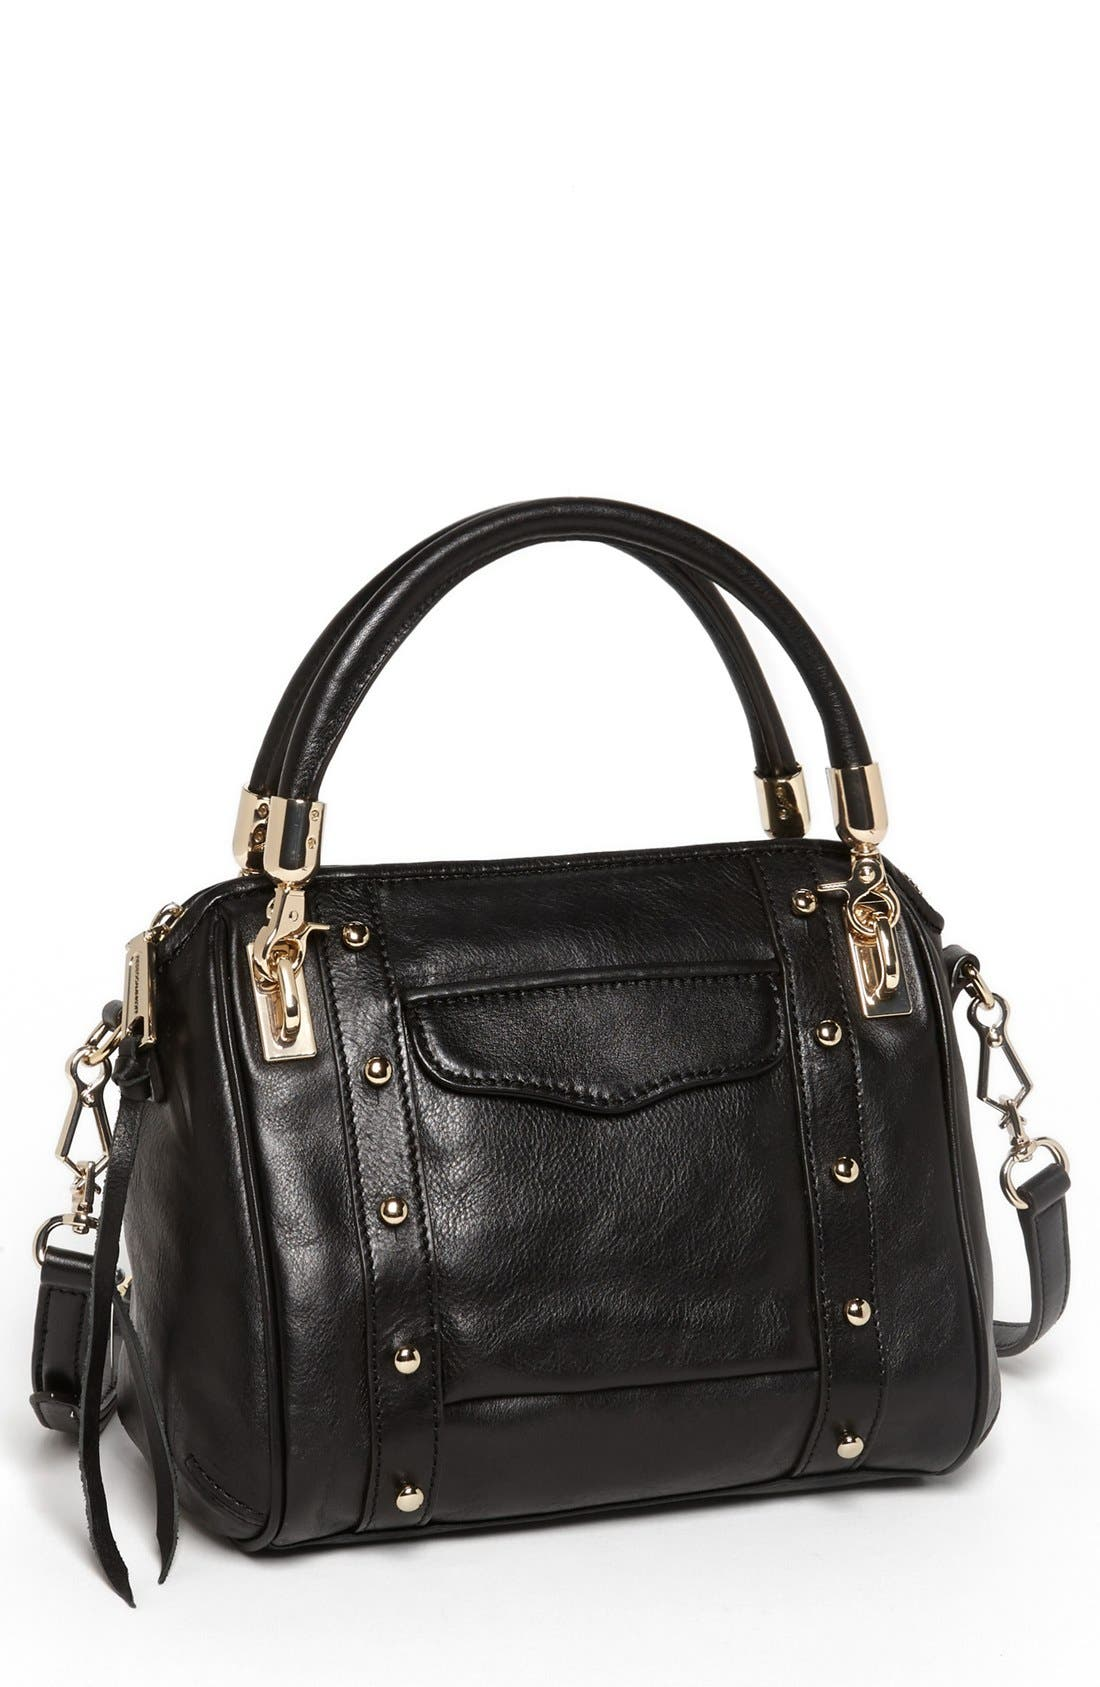 Main Image - Rebecca Minkoff 'Mini Cupid' Crossbody Bag